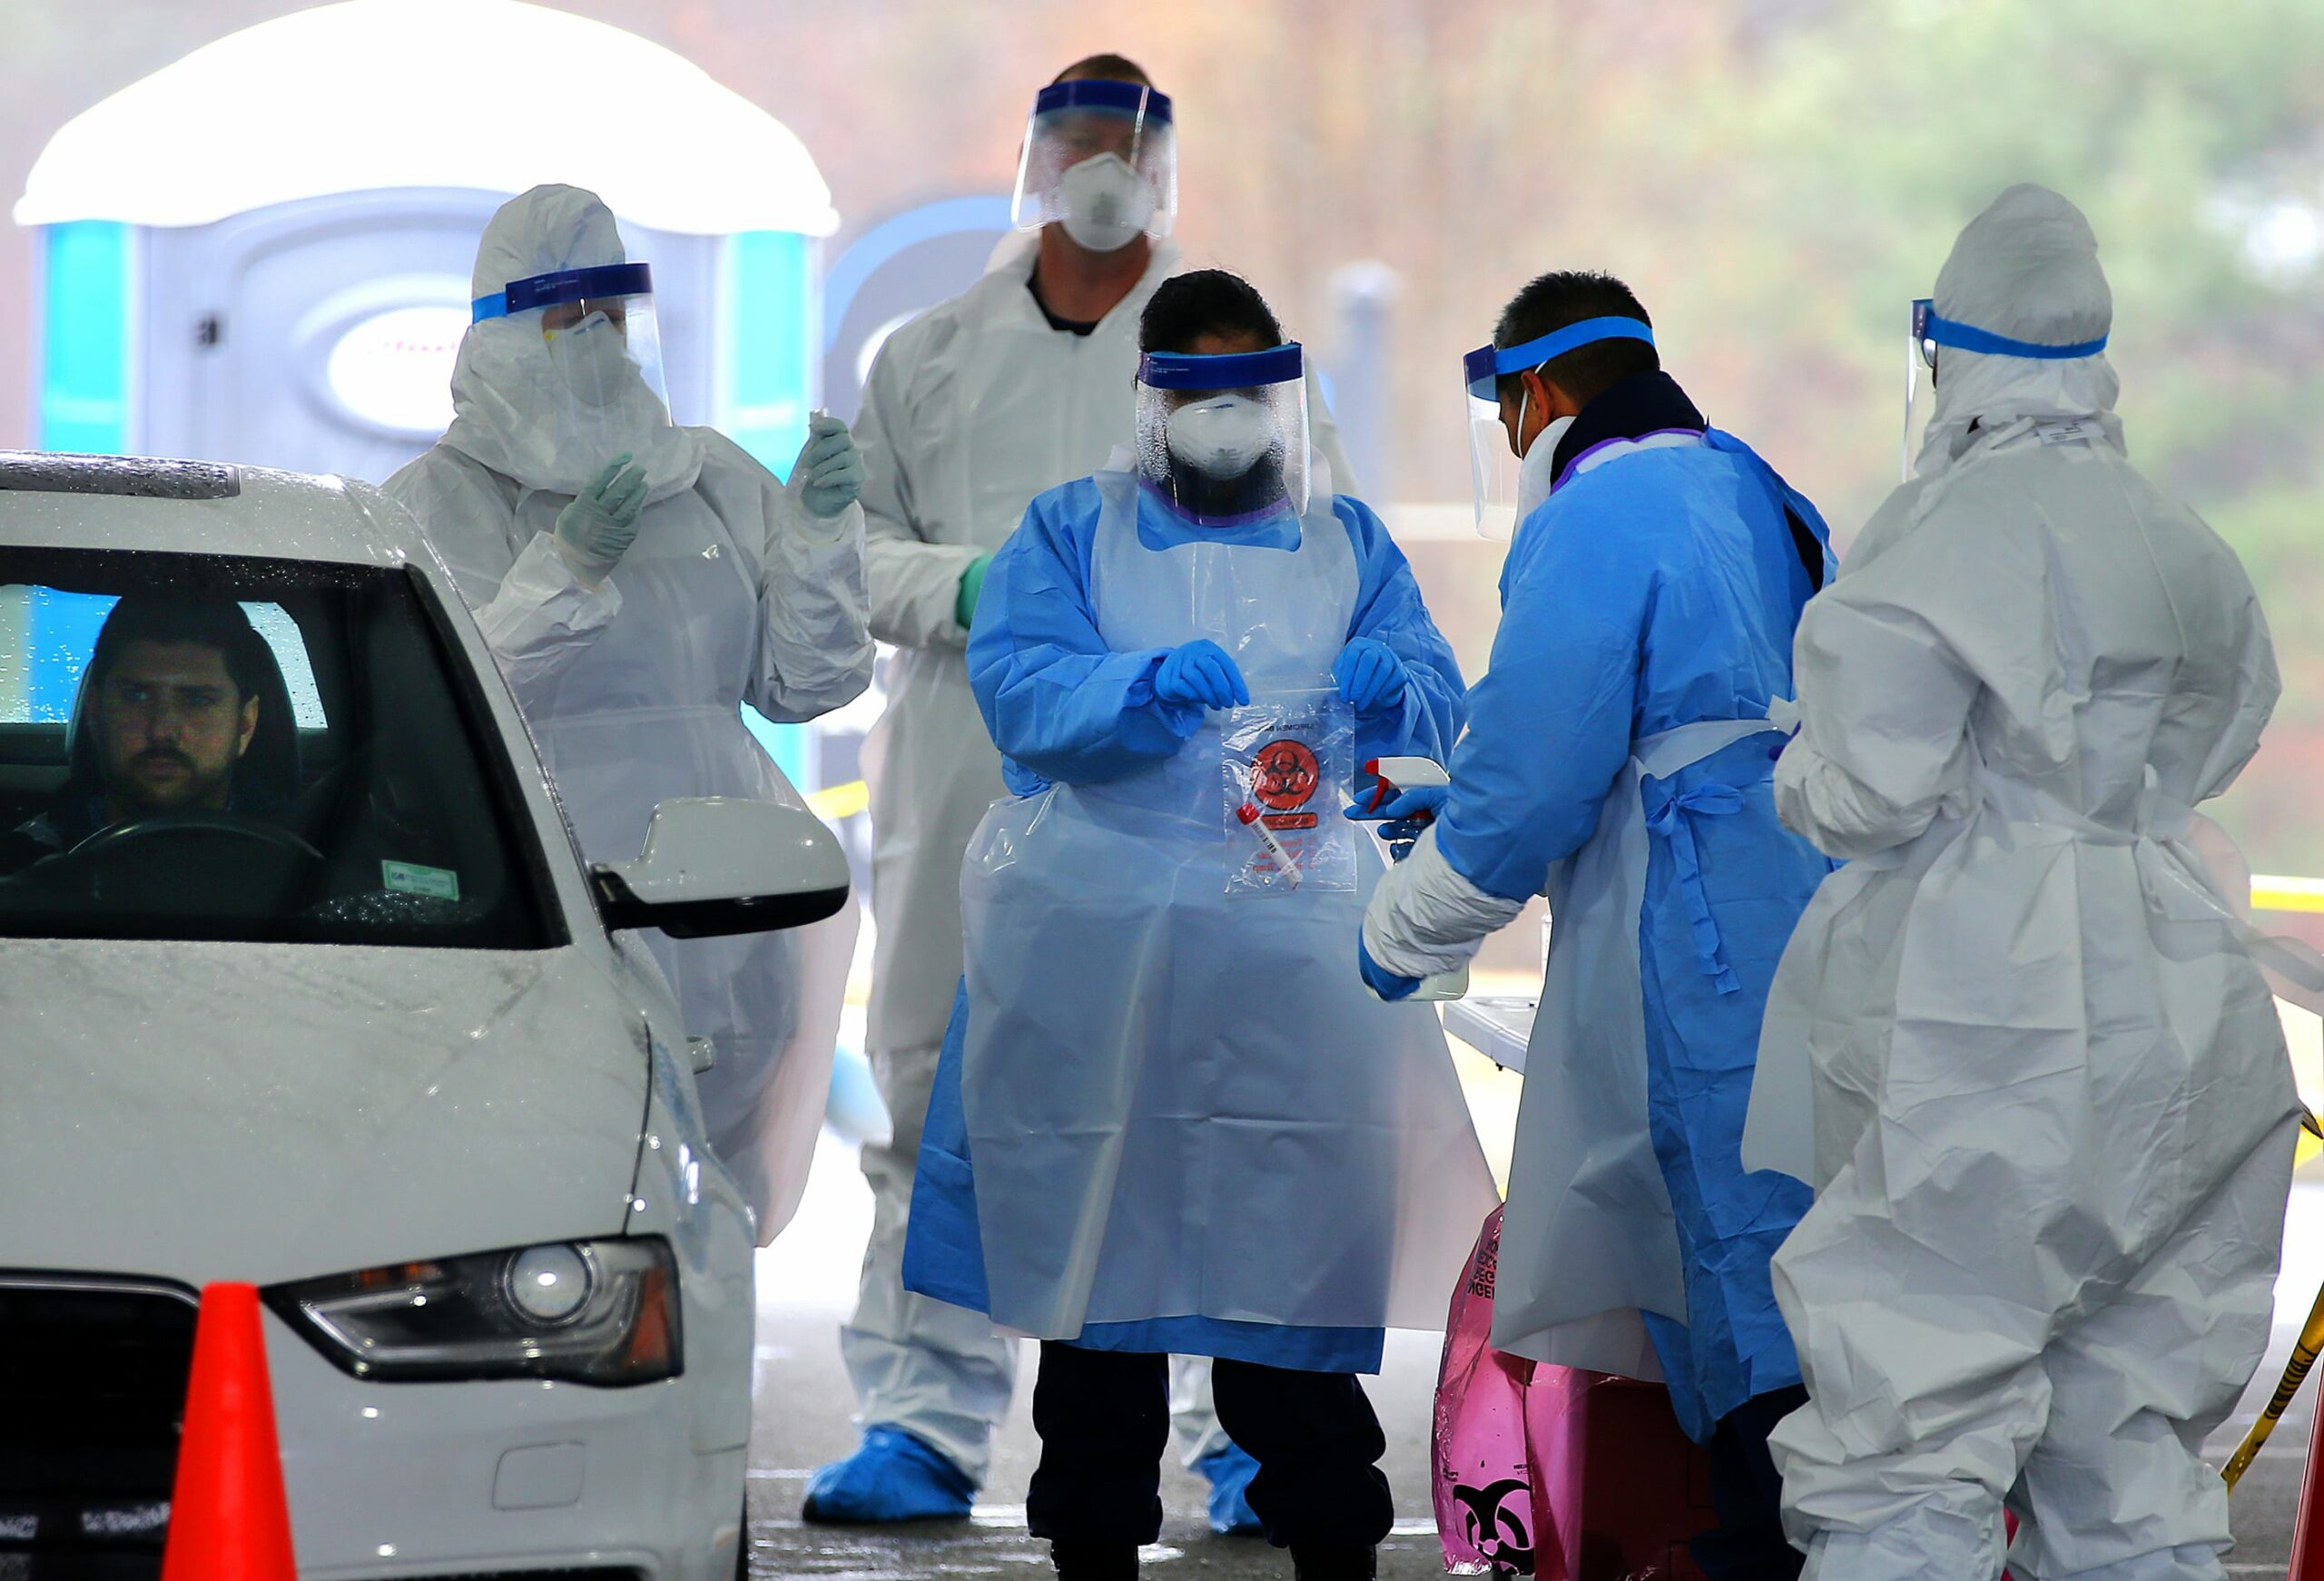 Experts say the virus 'survives on some surfaces for 28 days'